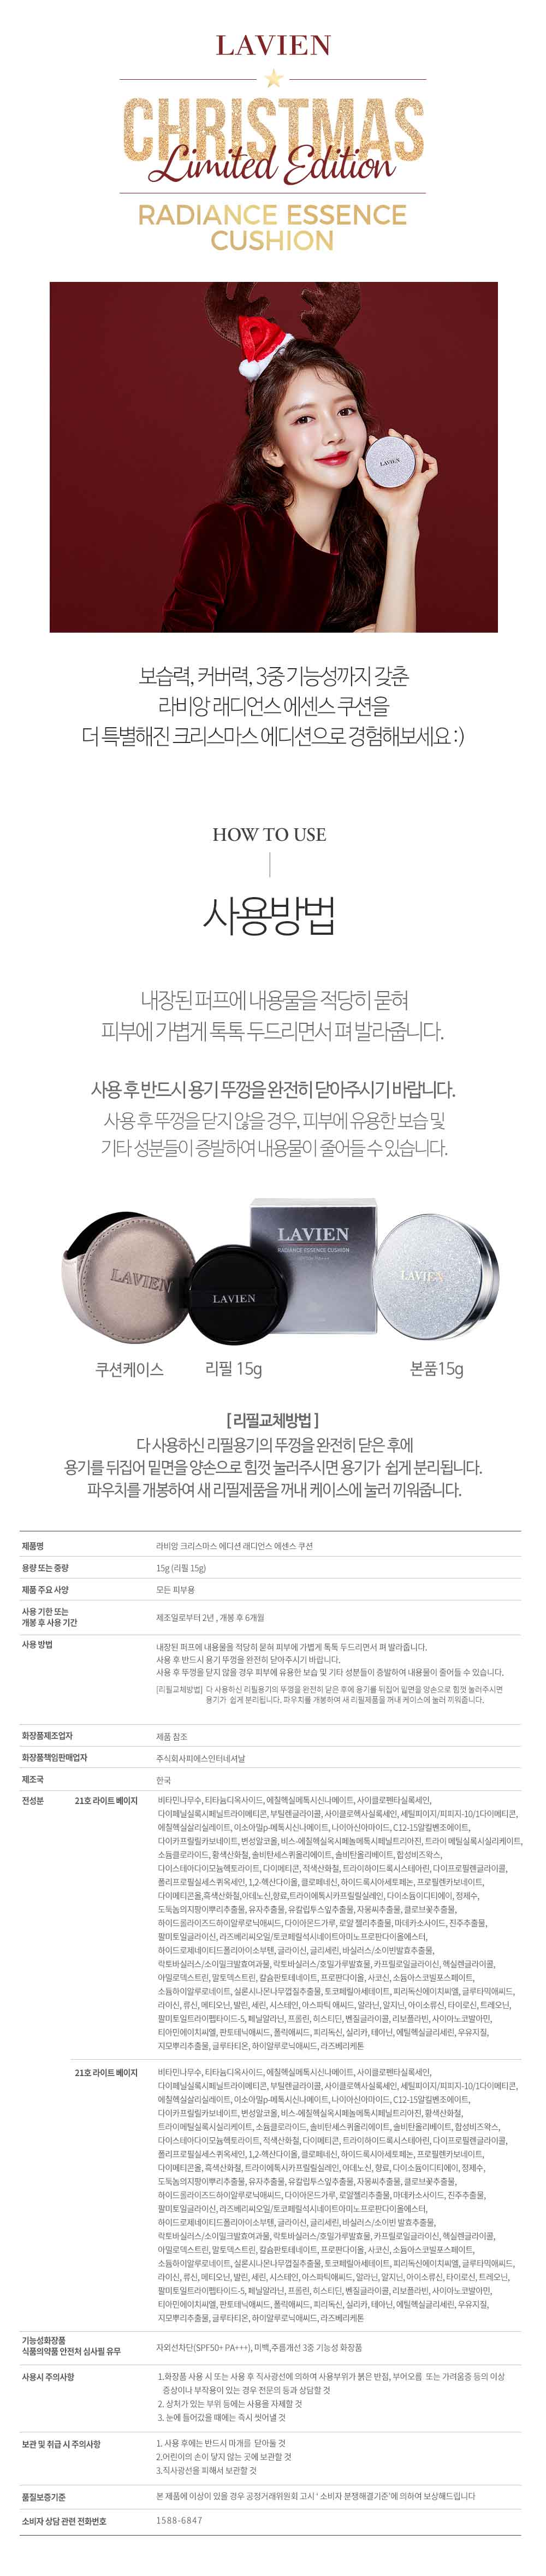 Radiance Essence Cushion - Holiday Limited Edition Details